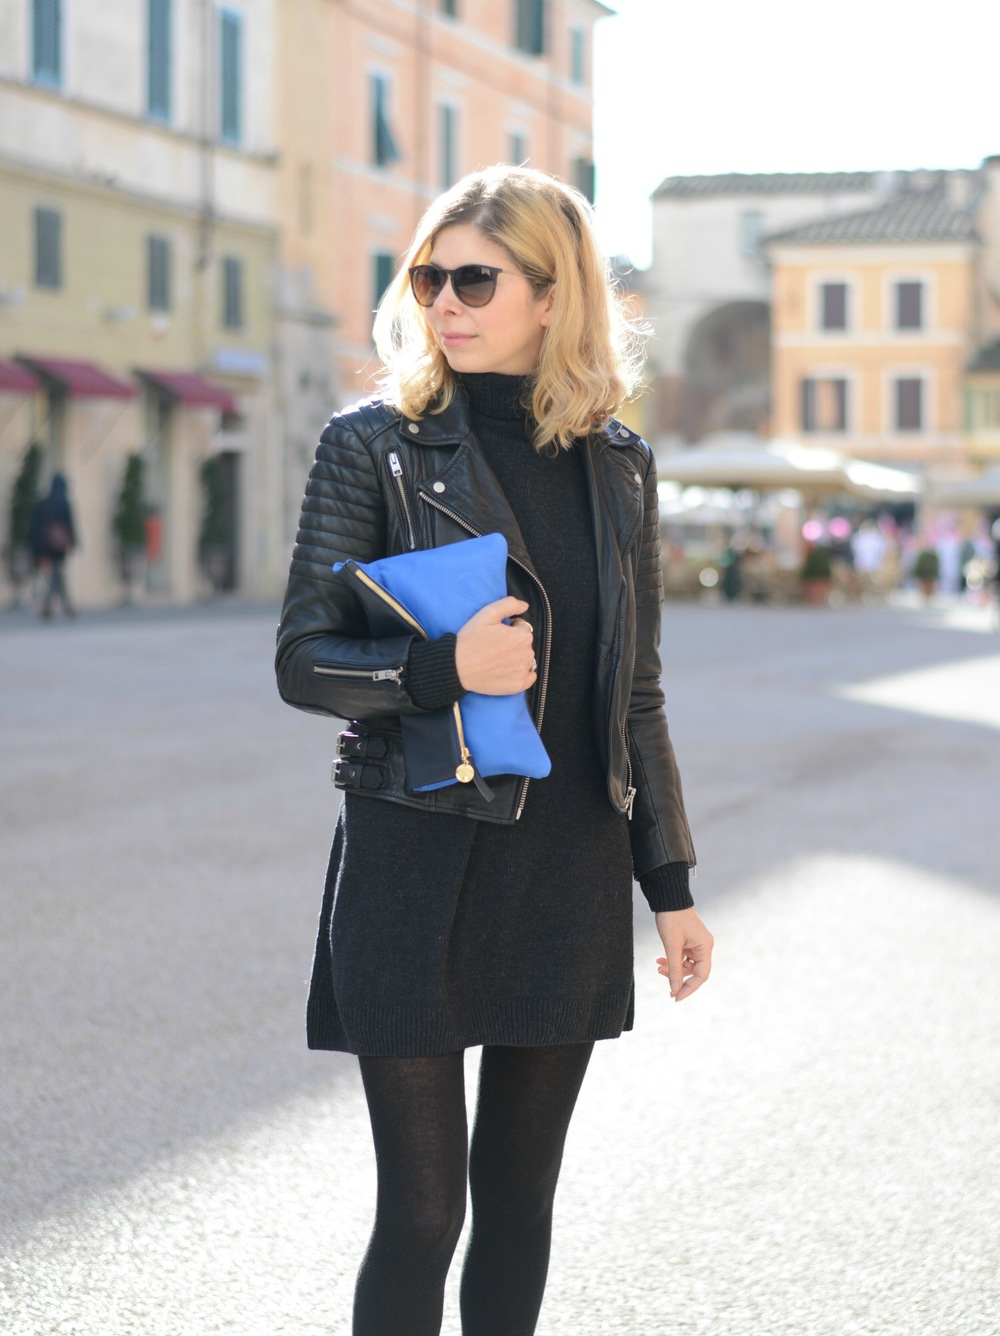 Wearing Allsaints leather jacket, Clare Vivier clutch, Cos jumper dress, Rayban glasses.